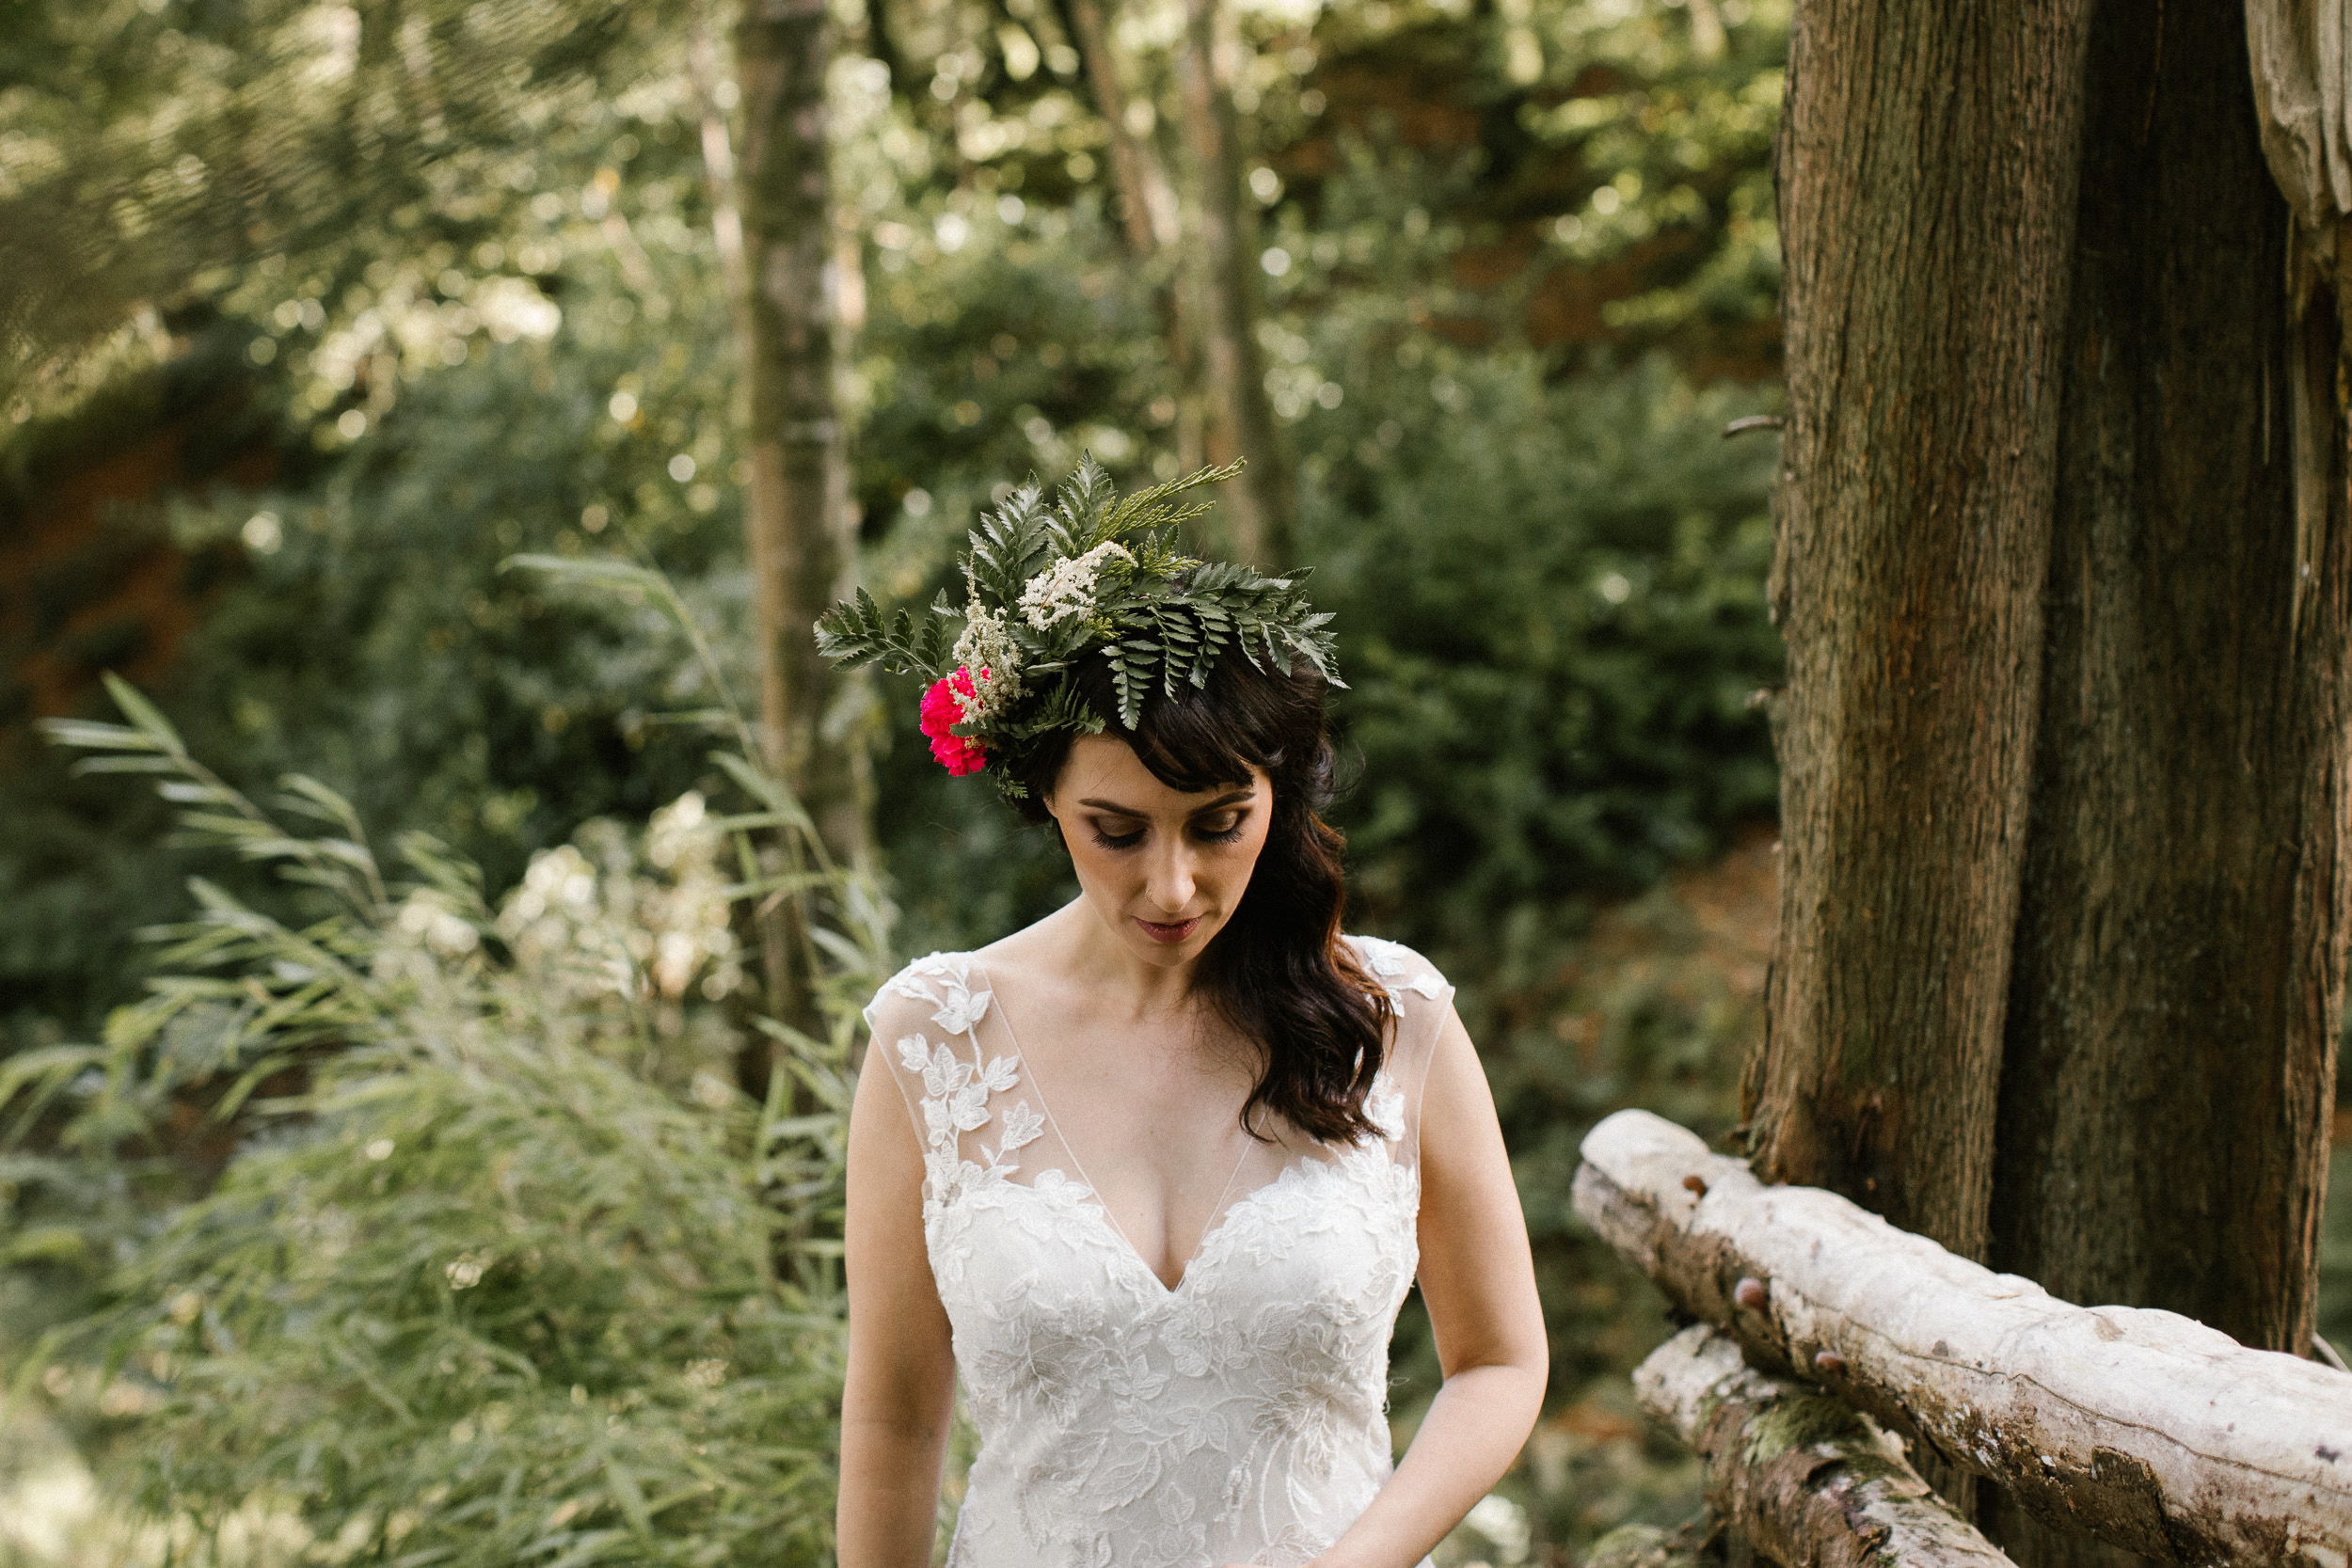 clairebyrnephotography-styled-shoot-huntingbrook-gardens-inspiration-weddings-woods-forest-80.jpg